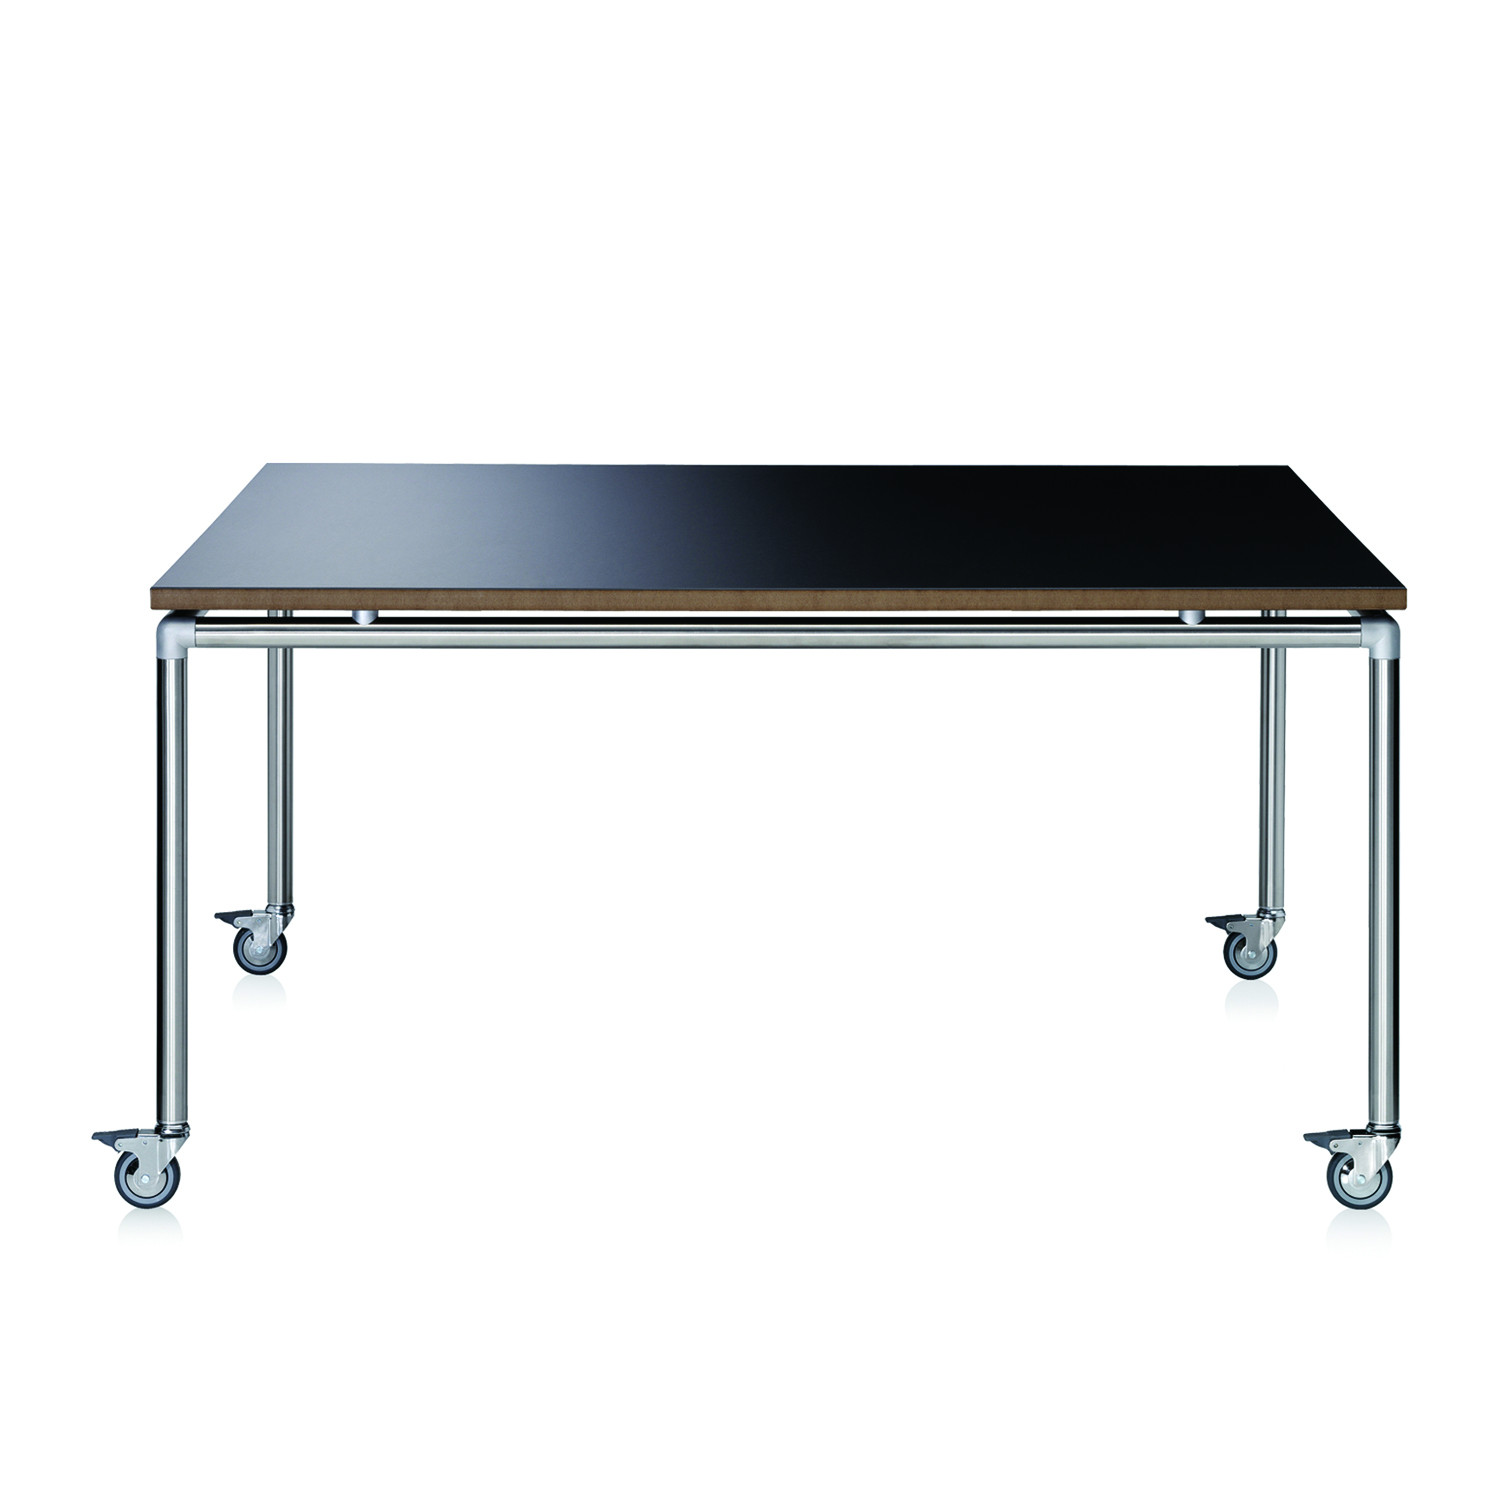 Move-it Tables